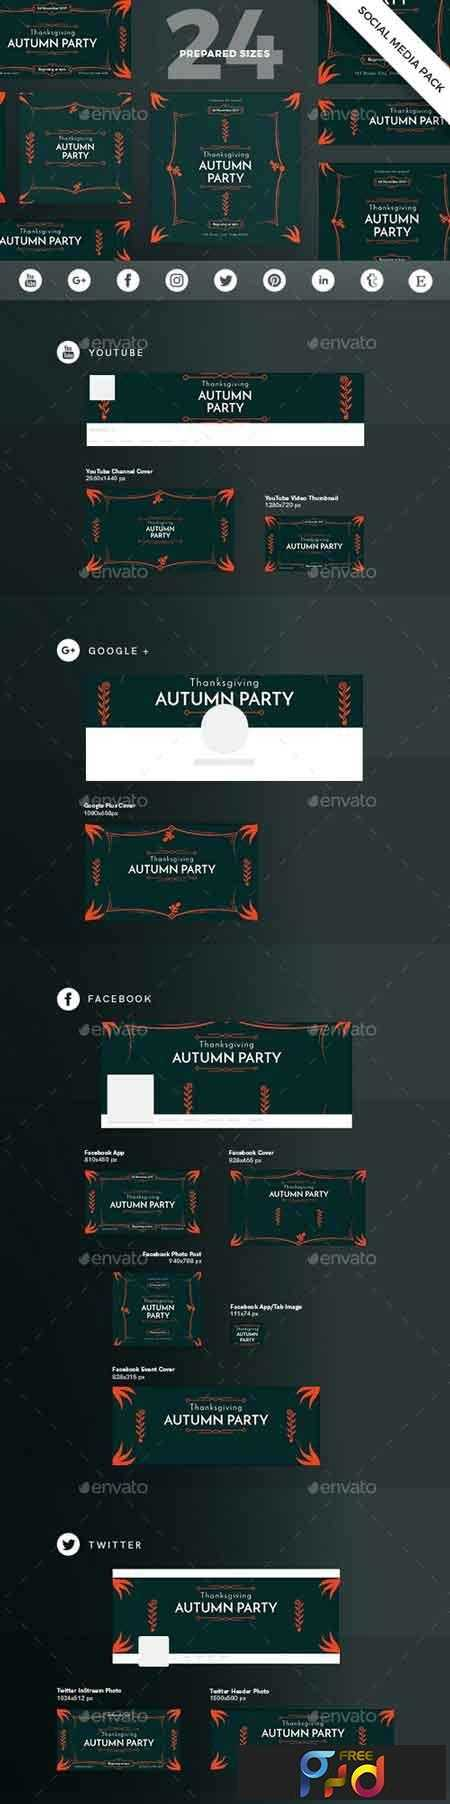 1812344 Autumn Party Social Media Pack 20769397 1